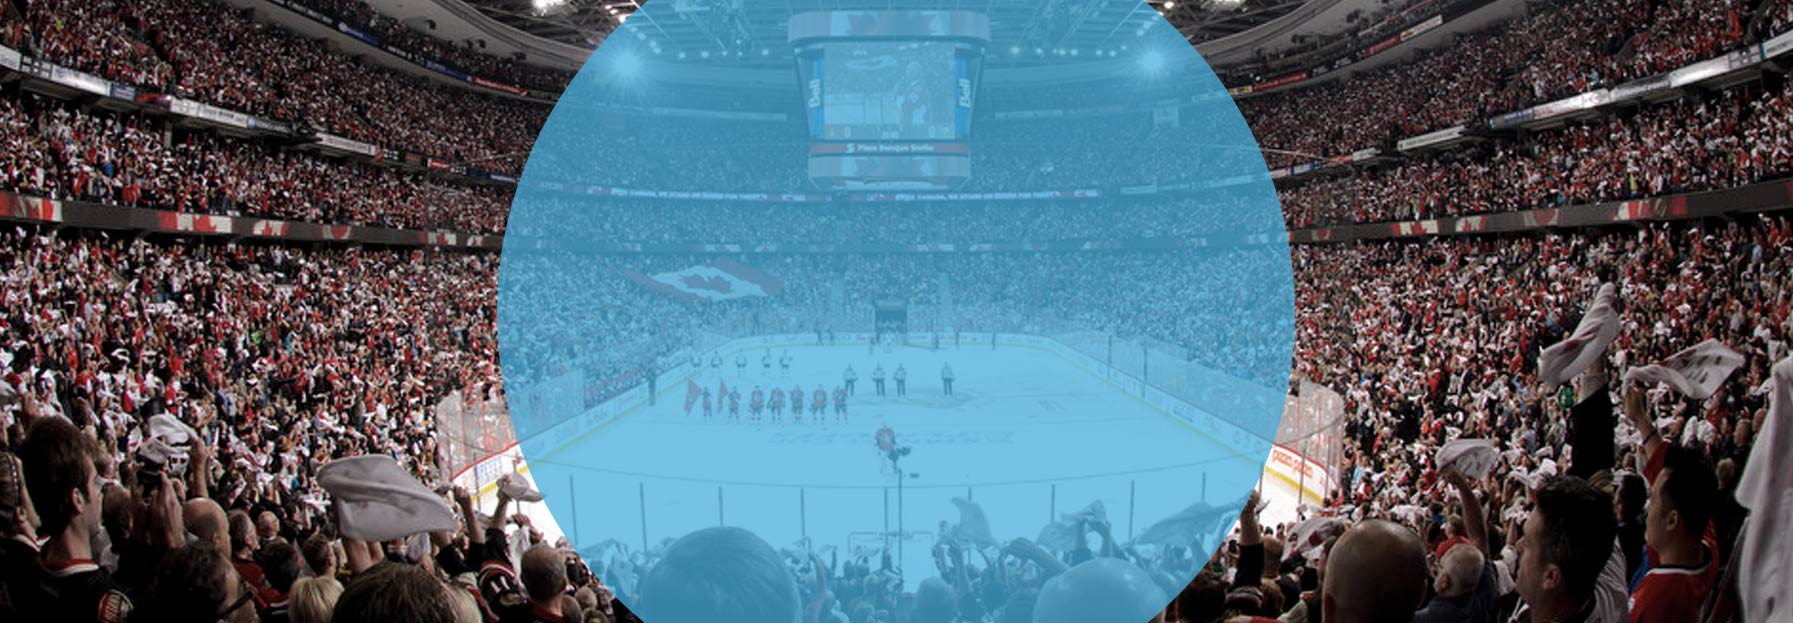 Jani-King the Official Cleaning Company of the Ottawa Senators and Canadian Tire Centre